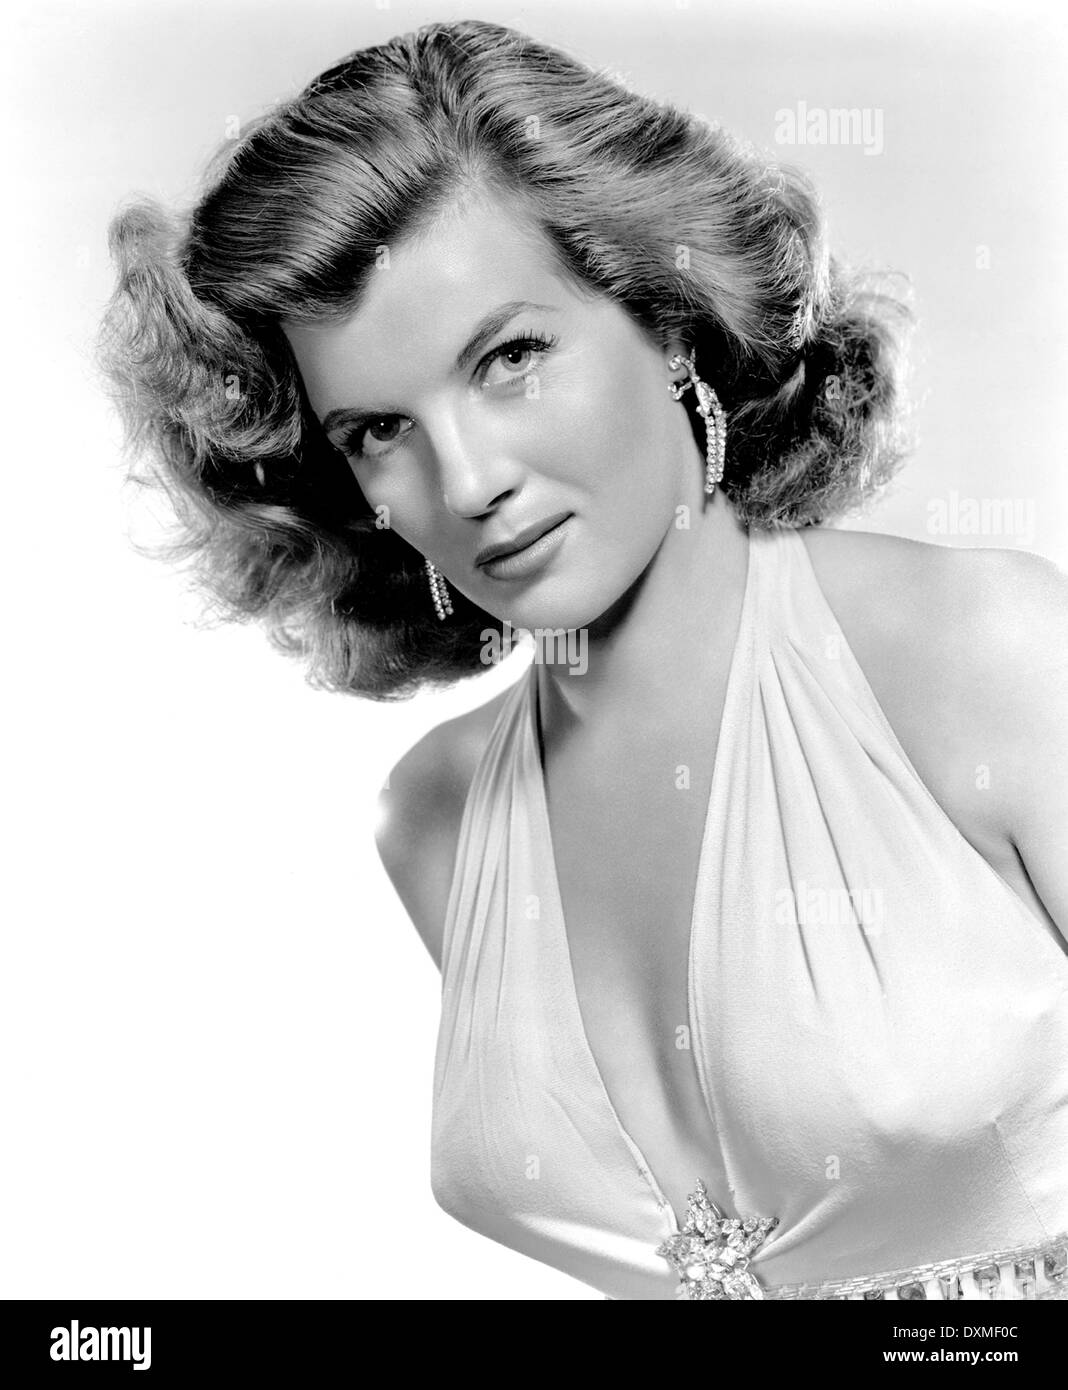 French Actress 1950 Stock Photos French Actress 1950 Stock Images